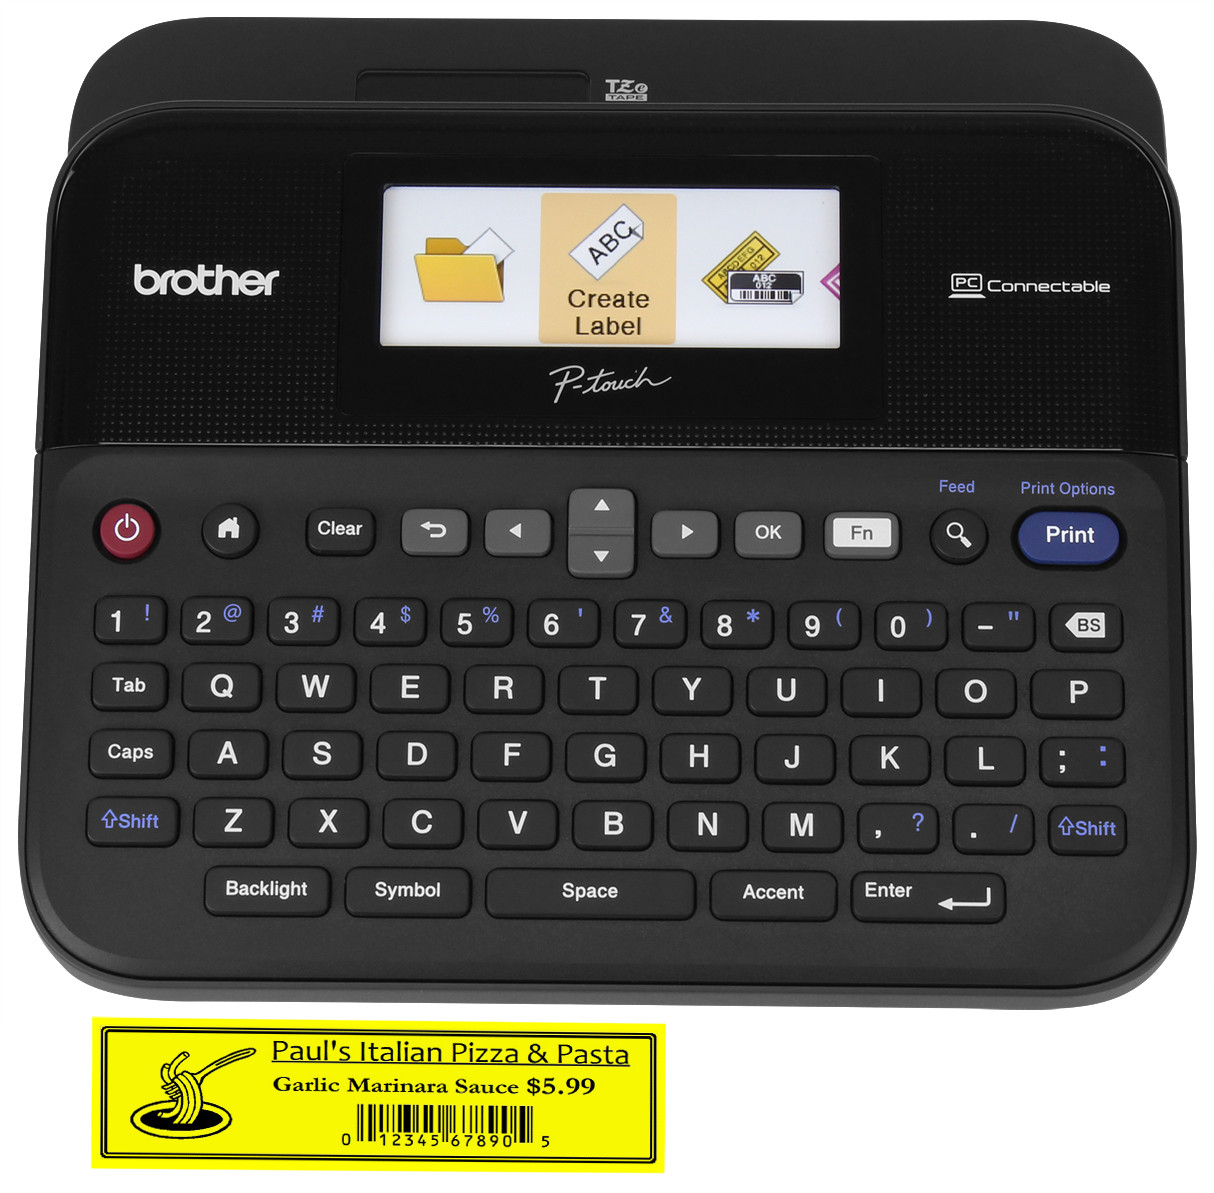 brother p touch pt 1280 user manual